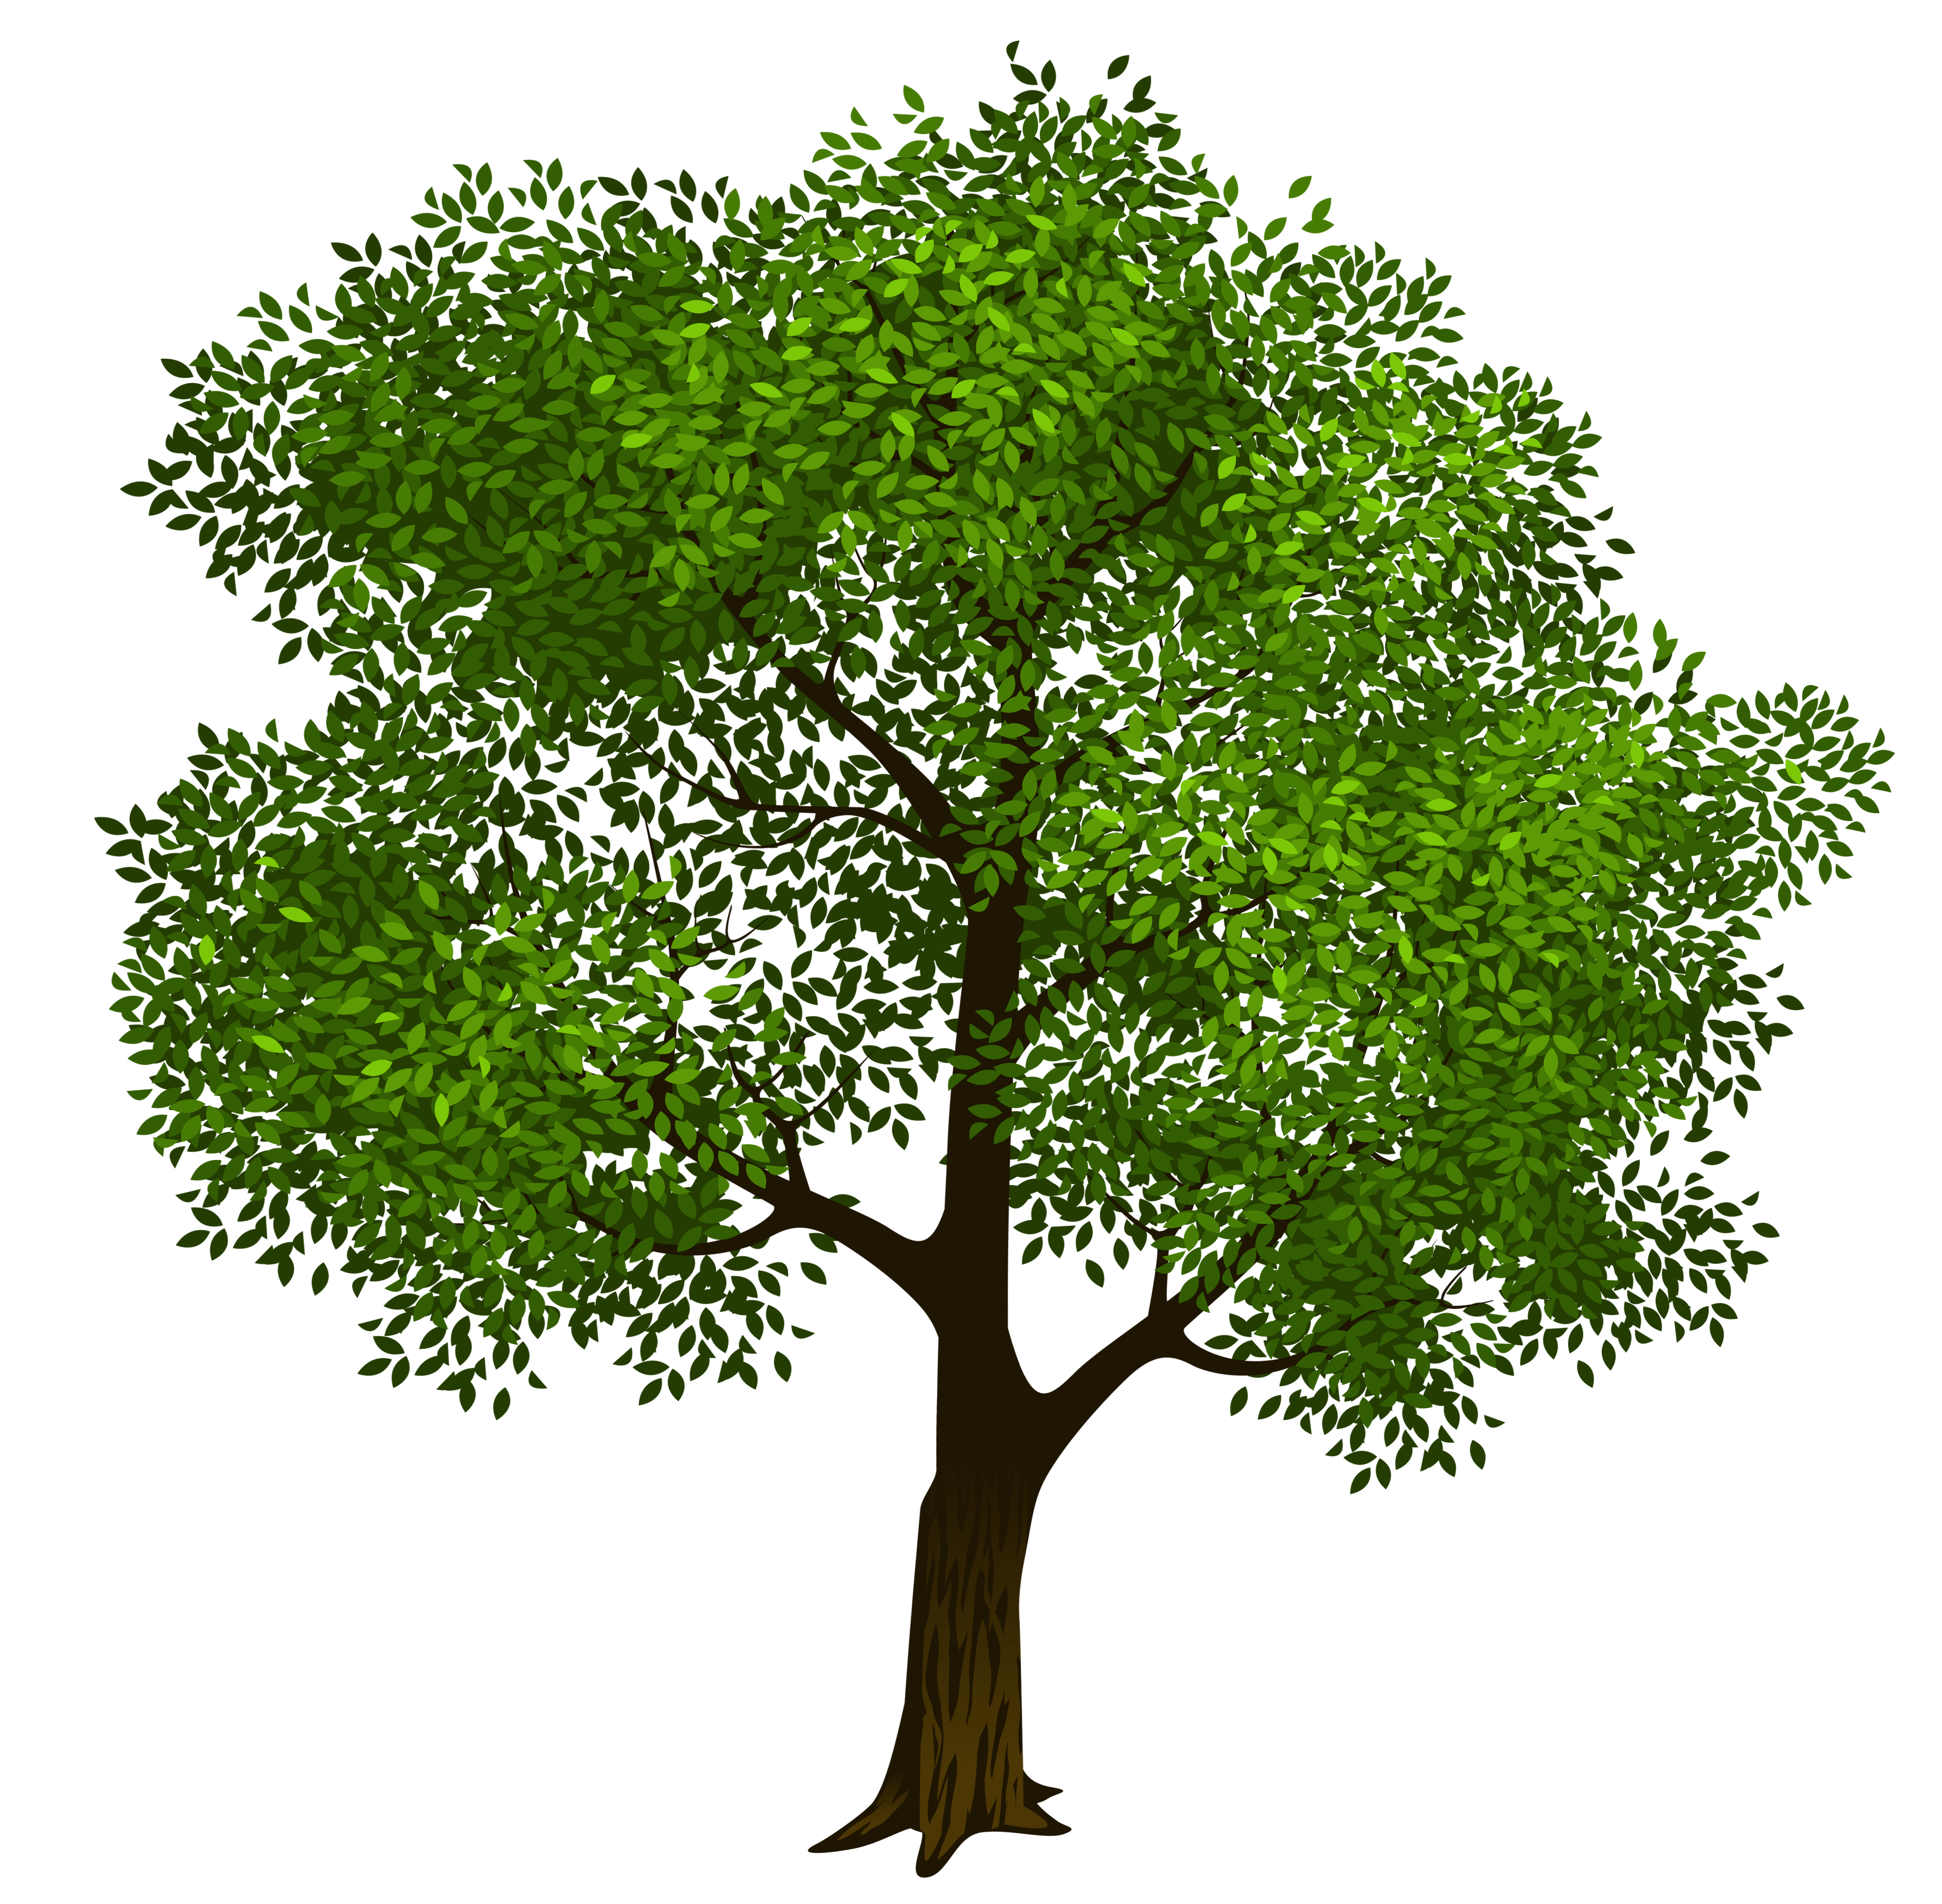 Transparent Green Tree Clipart Picture 6-Transparent green tree clipart picture 6-13